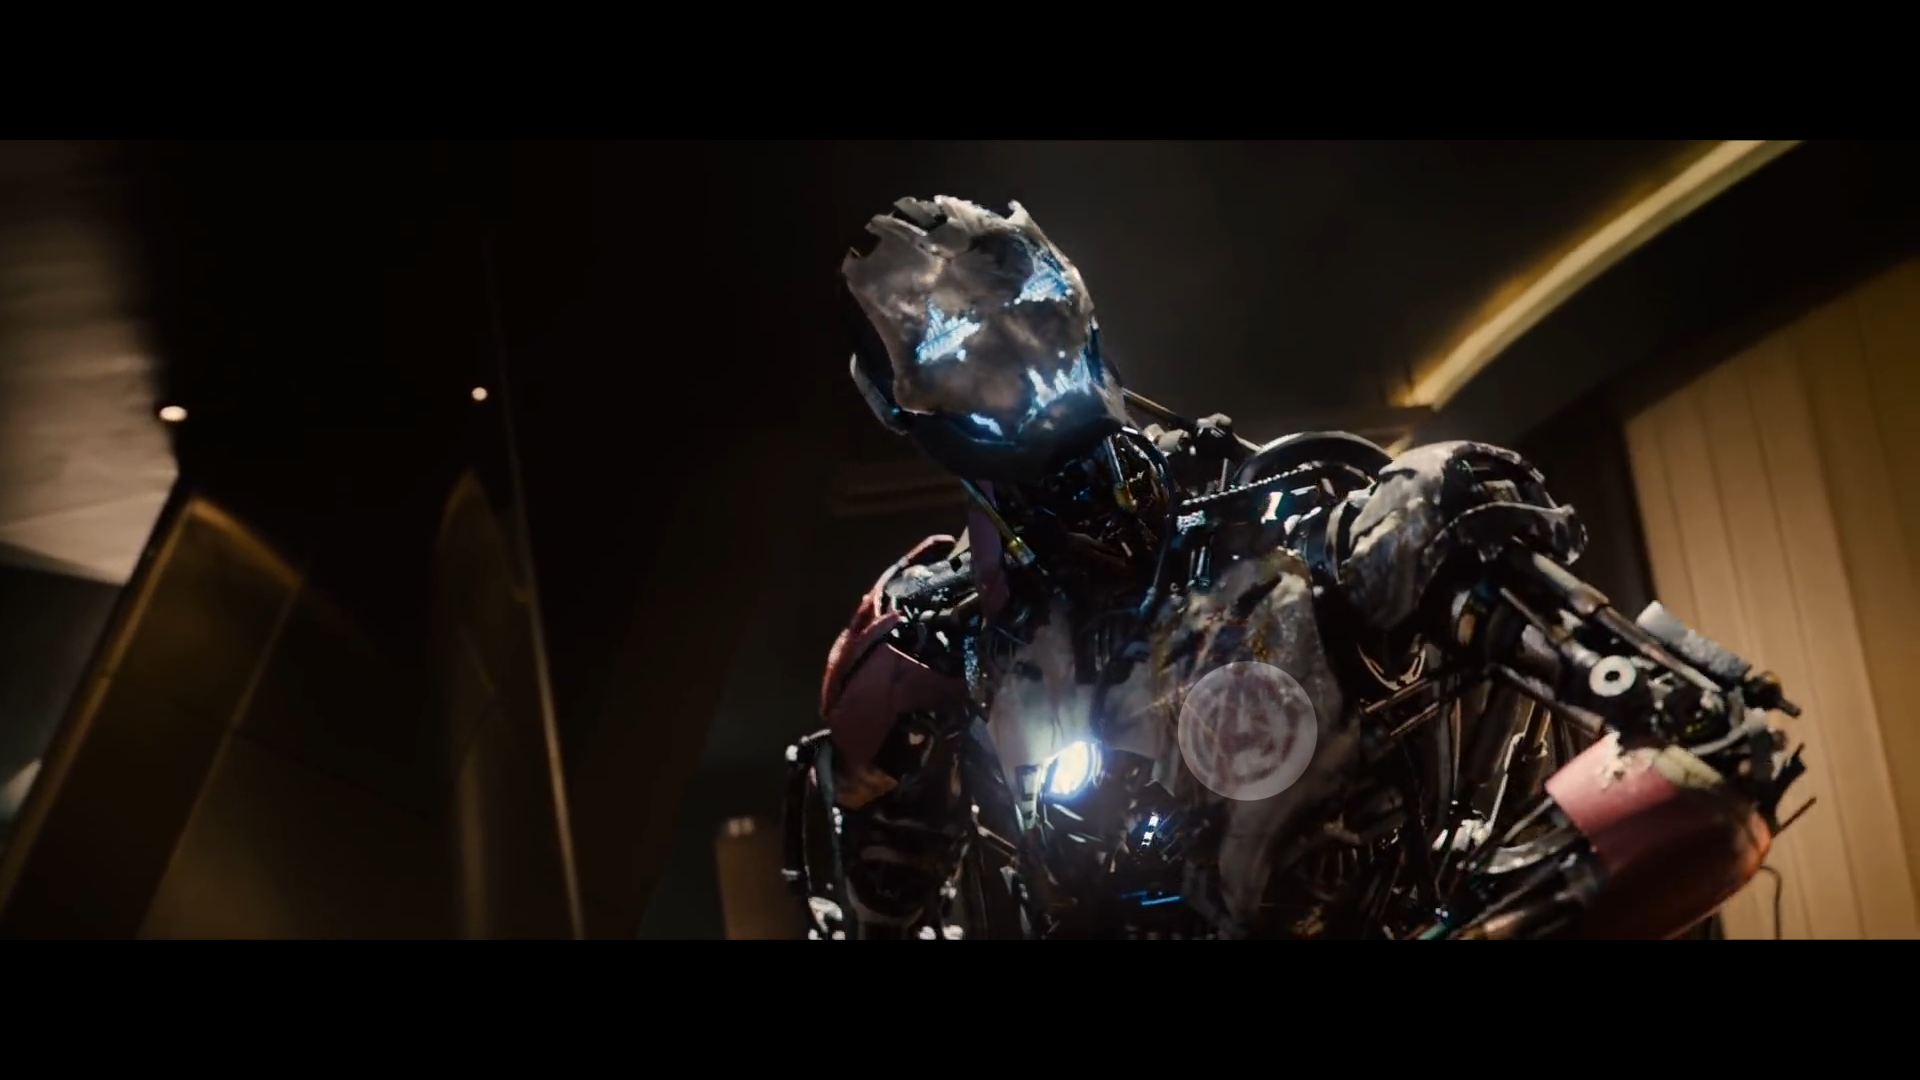 Ultron's roots: we've been worried about robot uprisings for 200 years